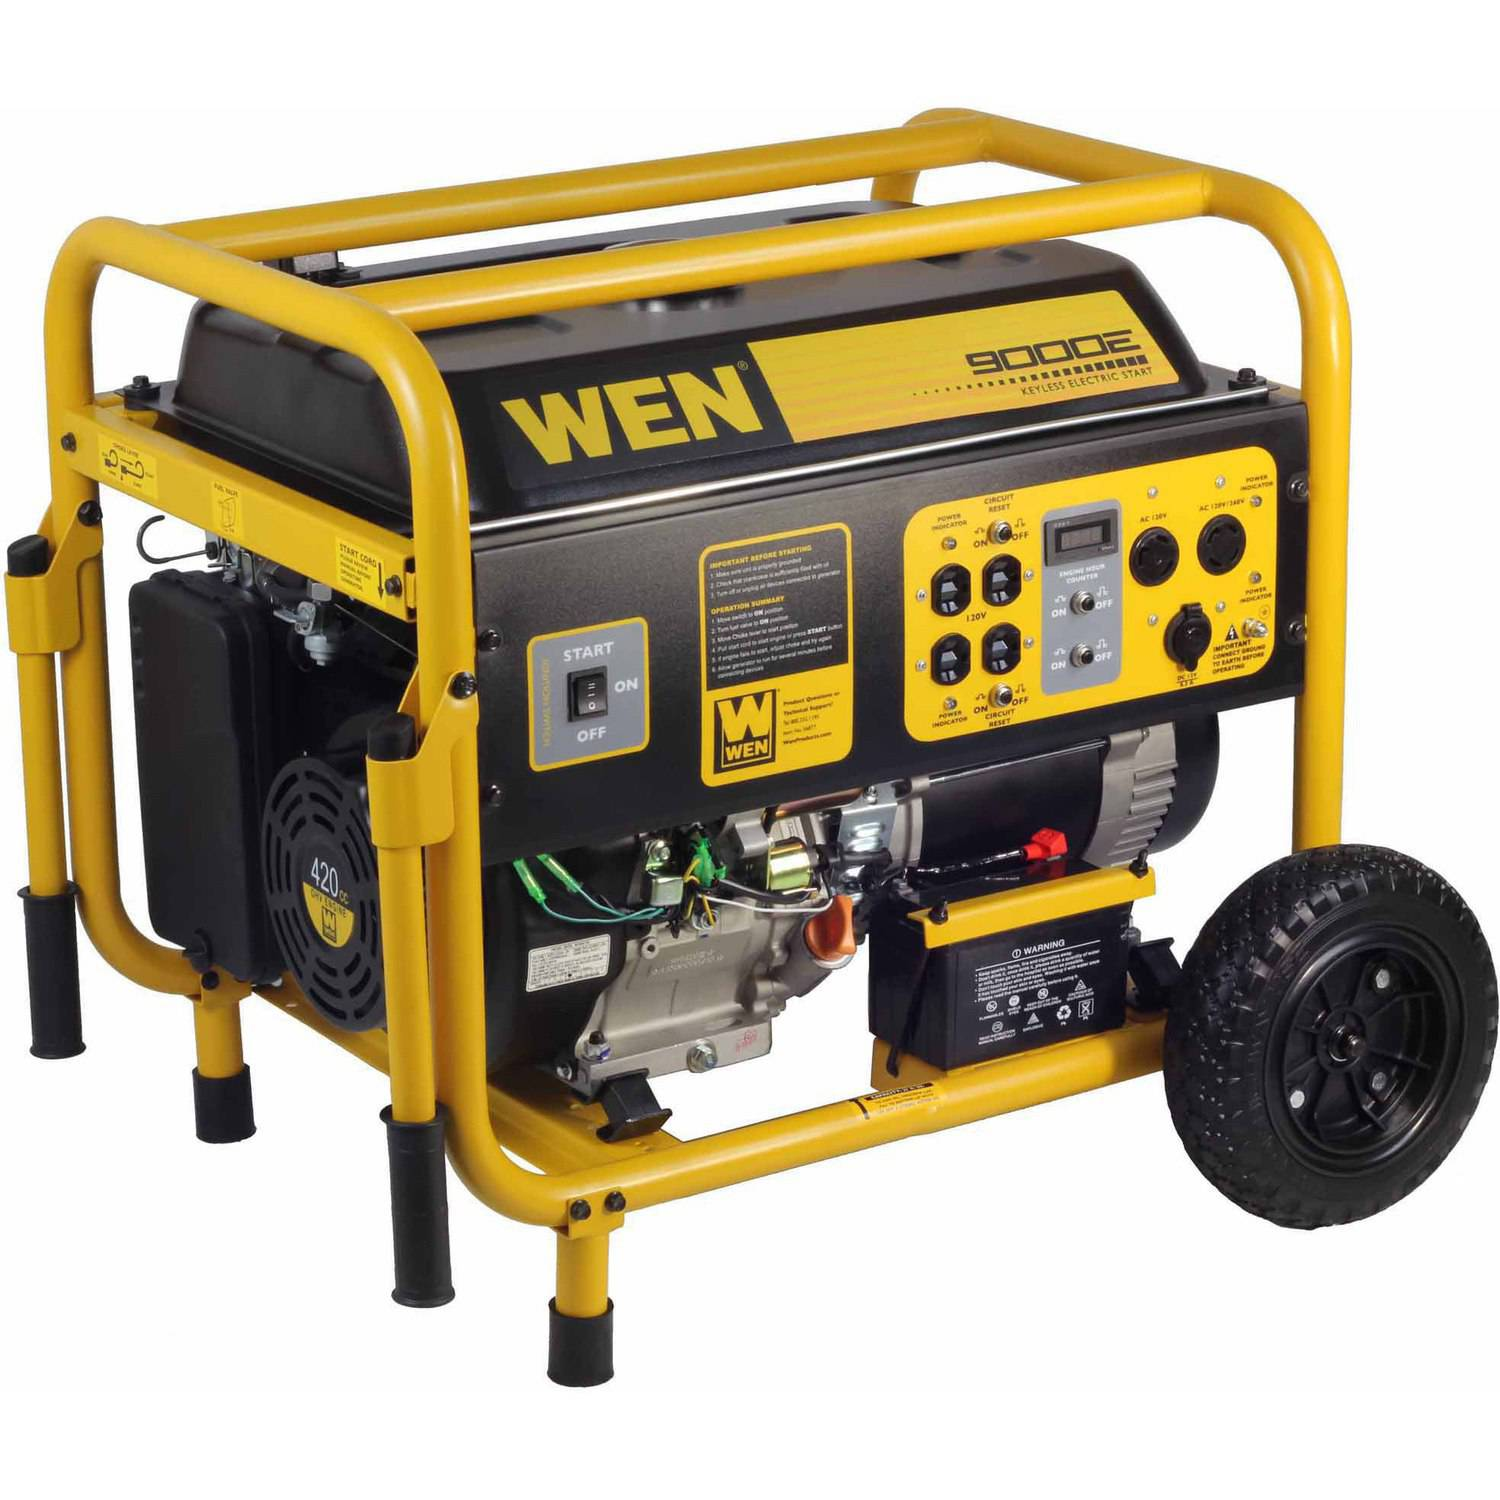 WEN 9000W 420cc 15 HP OHV Gas Powered Portable Generator with